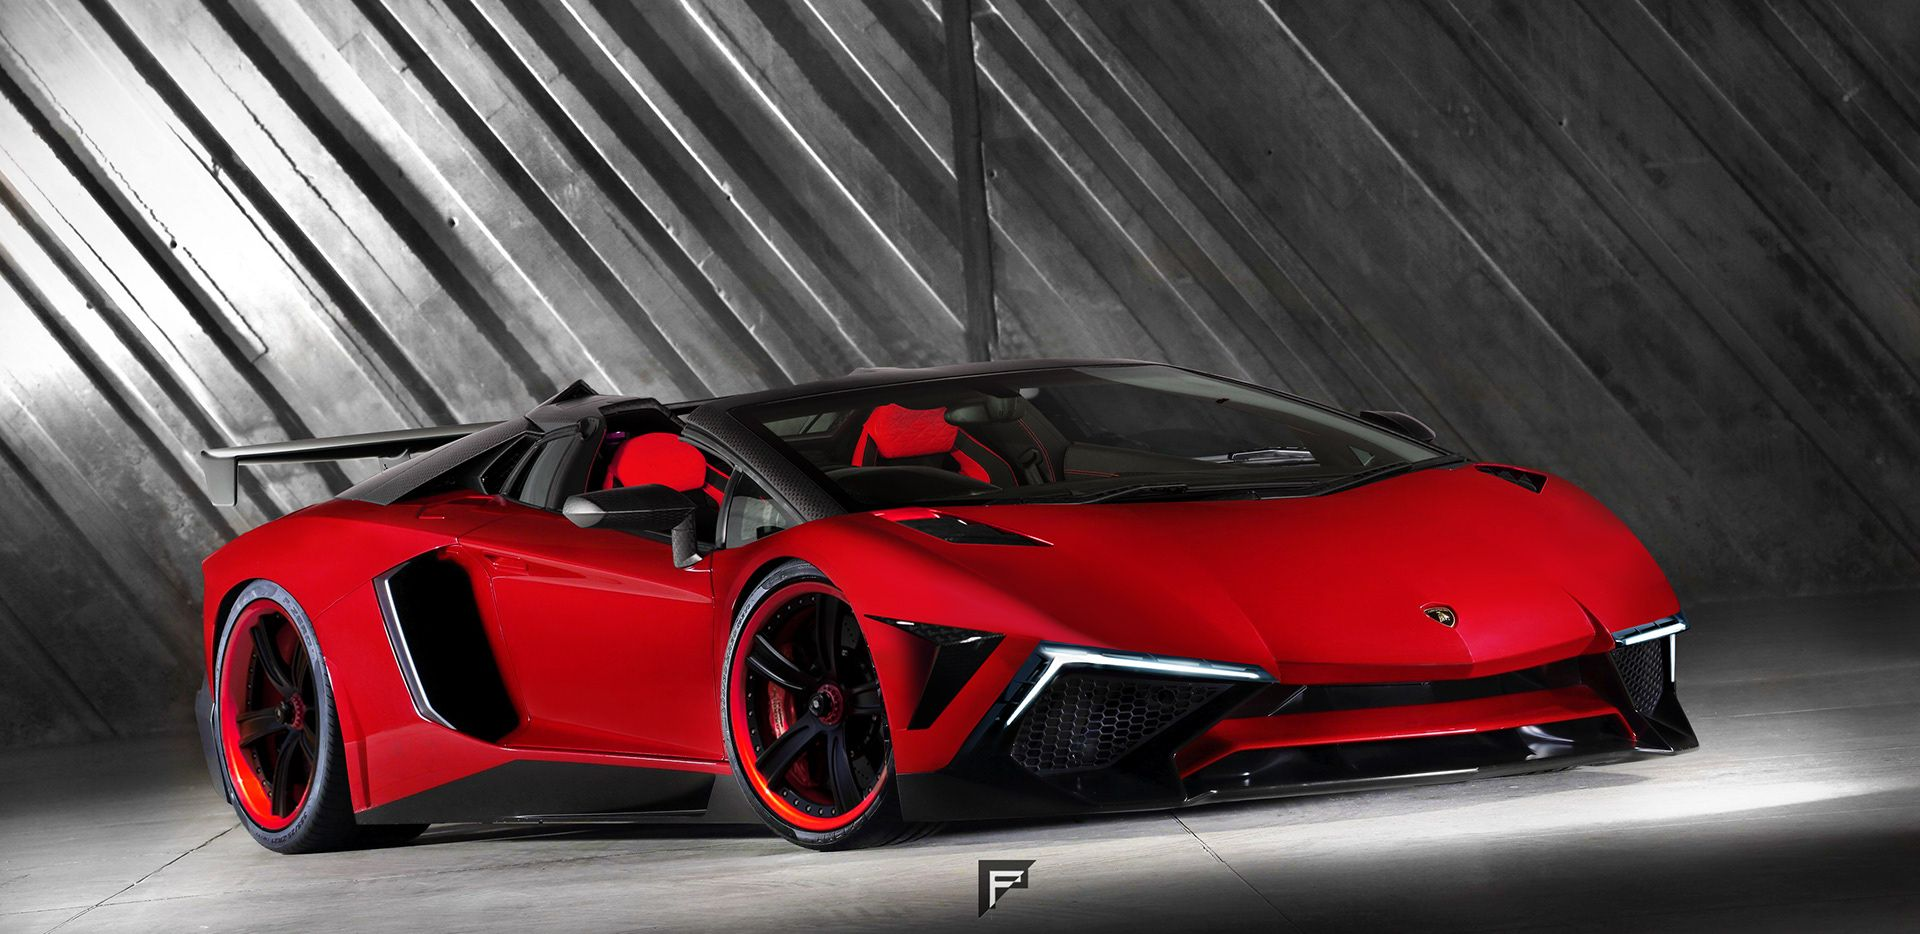 lamborghini aventador sv is infused with terzo millennio styling carscoops. Black Bedroom Furniture Sets. Home Design Ideas